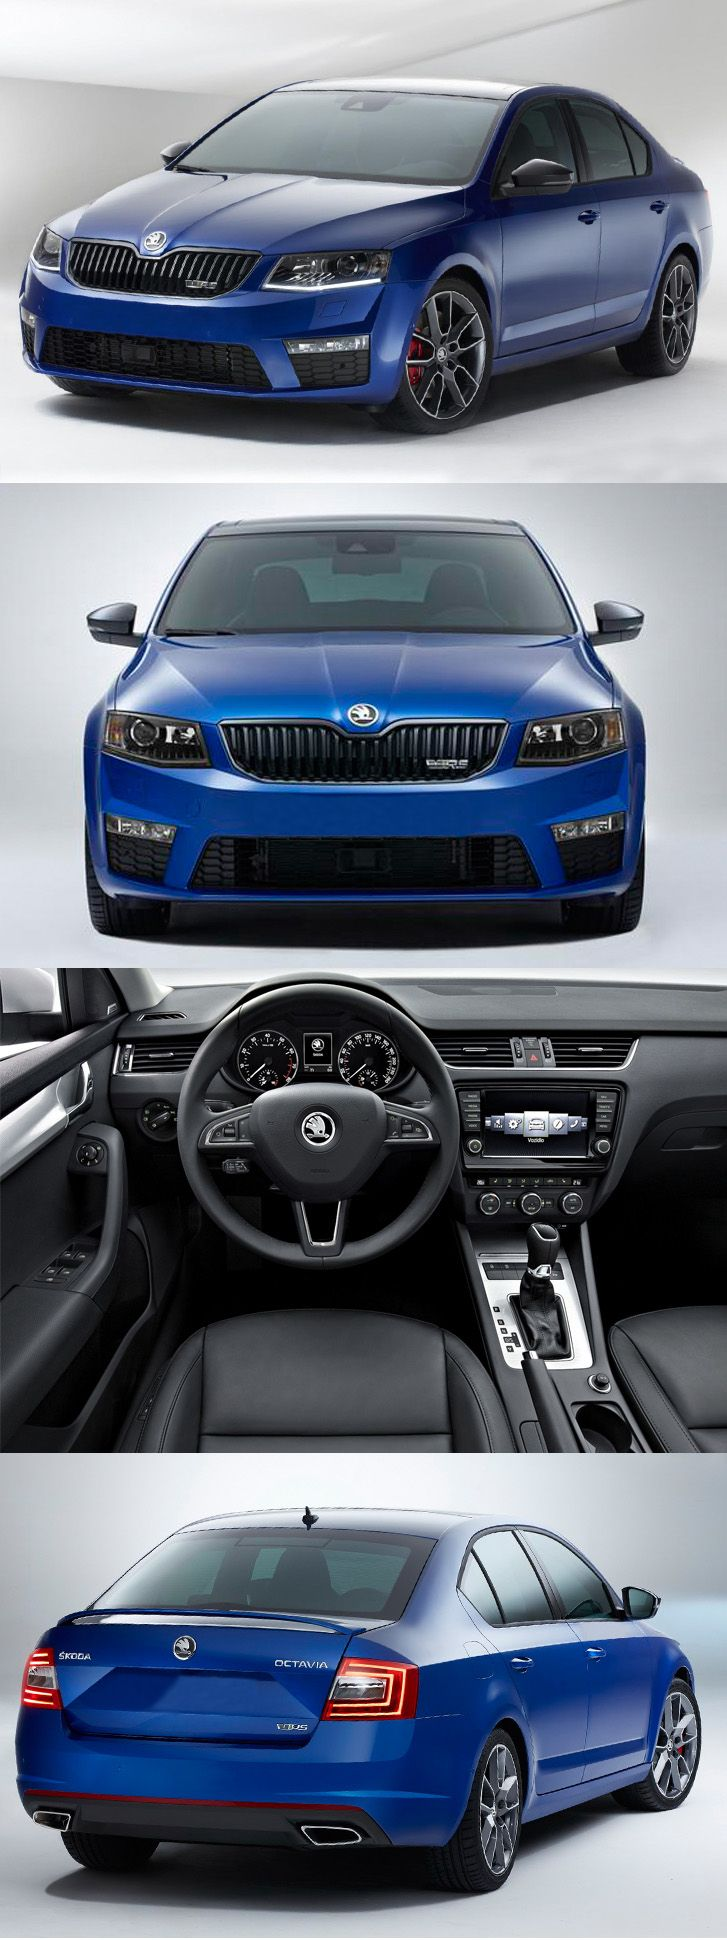 117 best skoda auto images on Pinterest